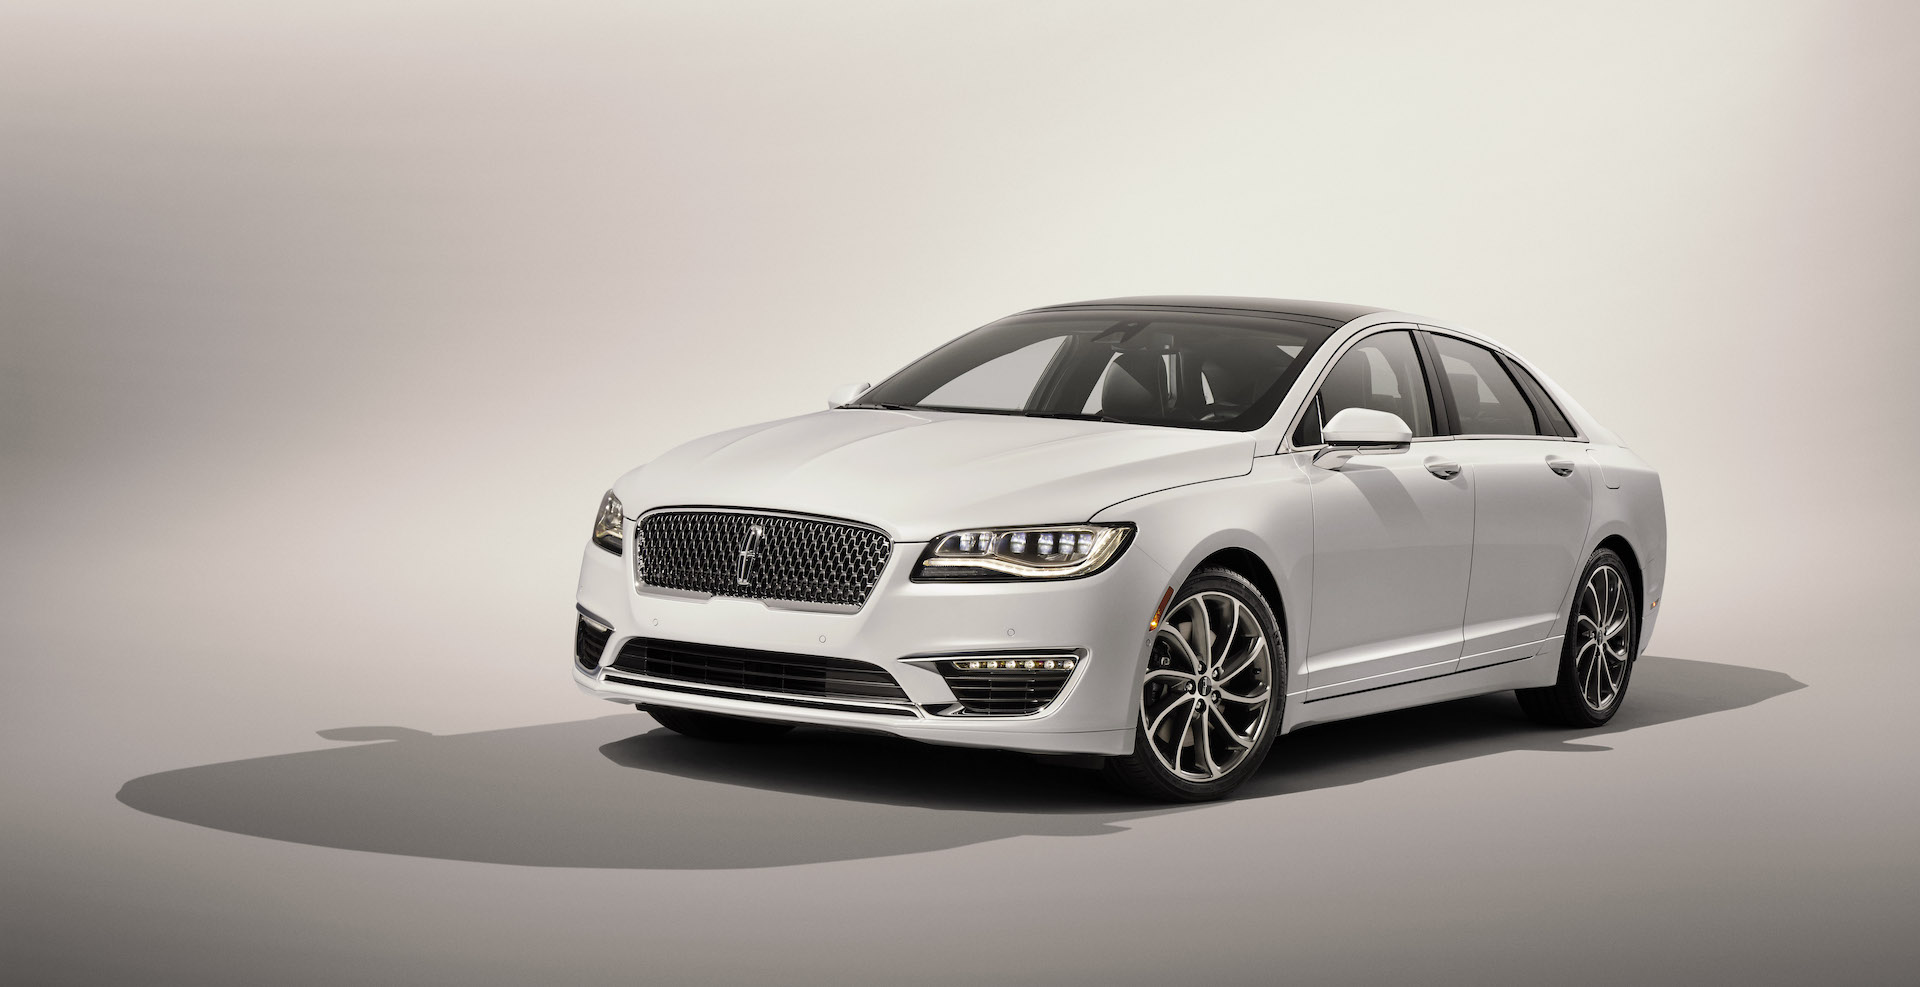 2020 Lincoln Mkz Review.2020 Lincoln Mkz Review Ratings Specs Prices And Photos